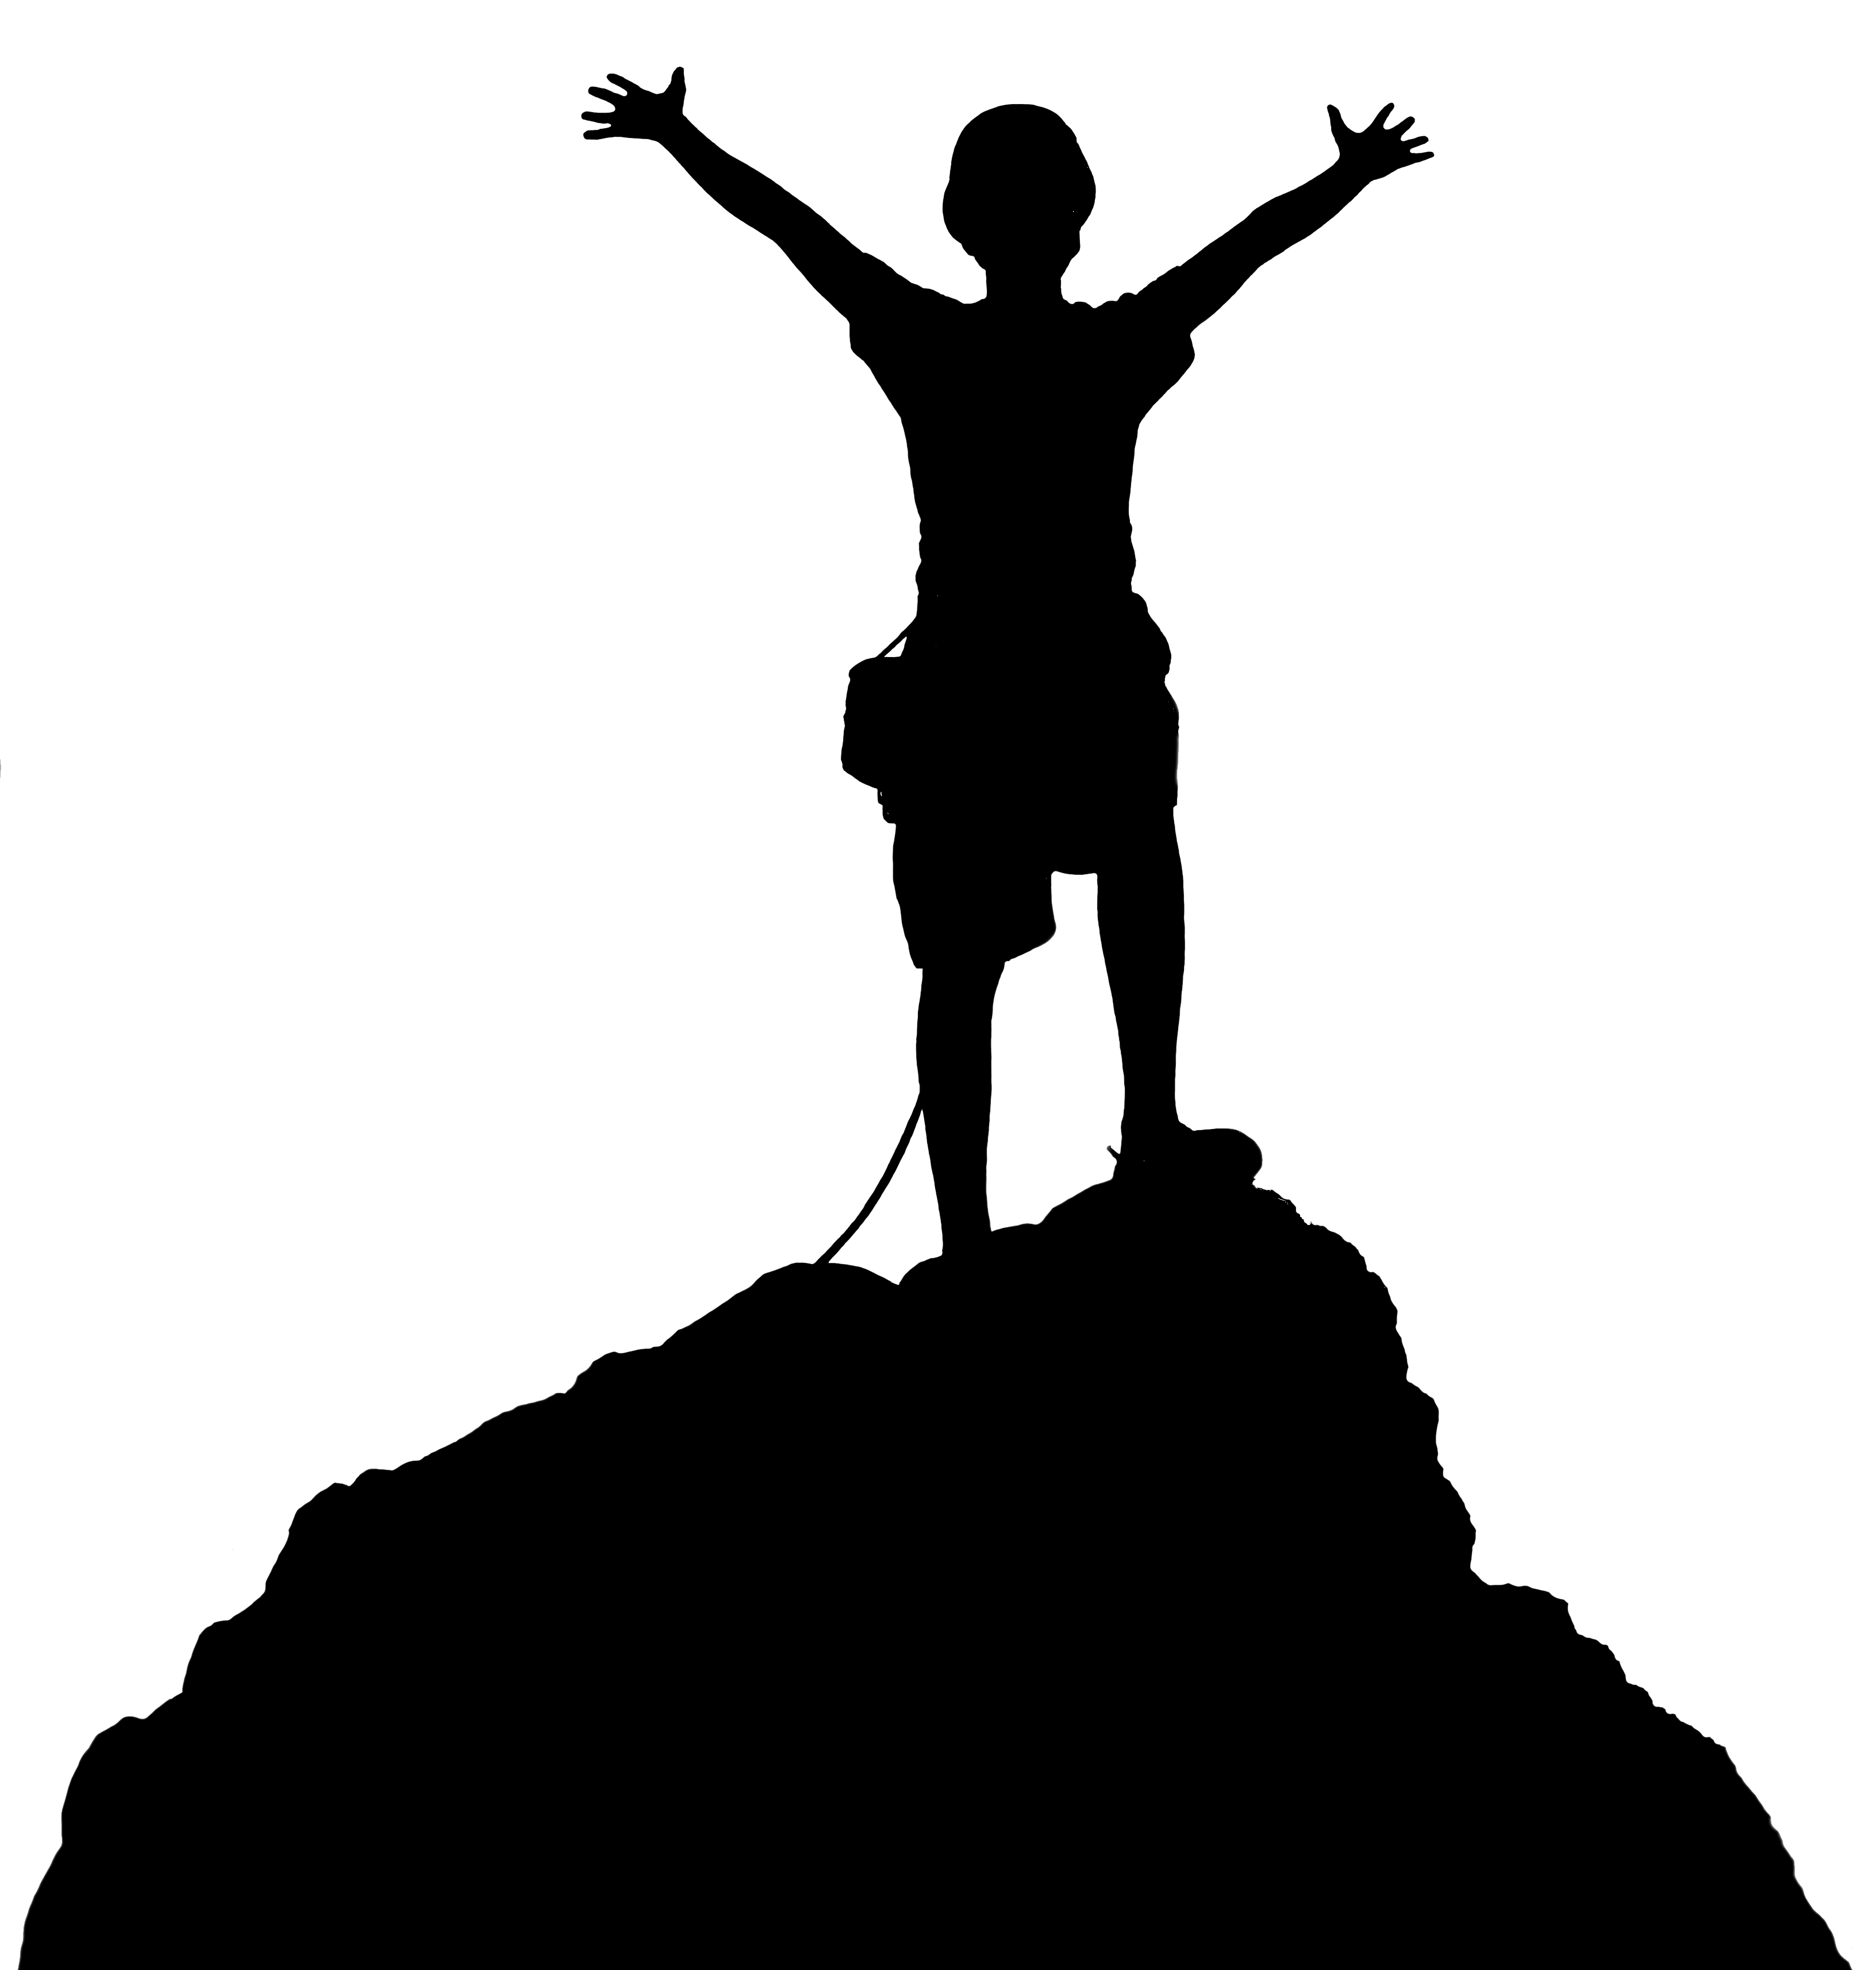 Free climb cliparts download. Hike clipart hill climbing